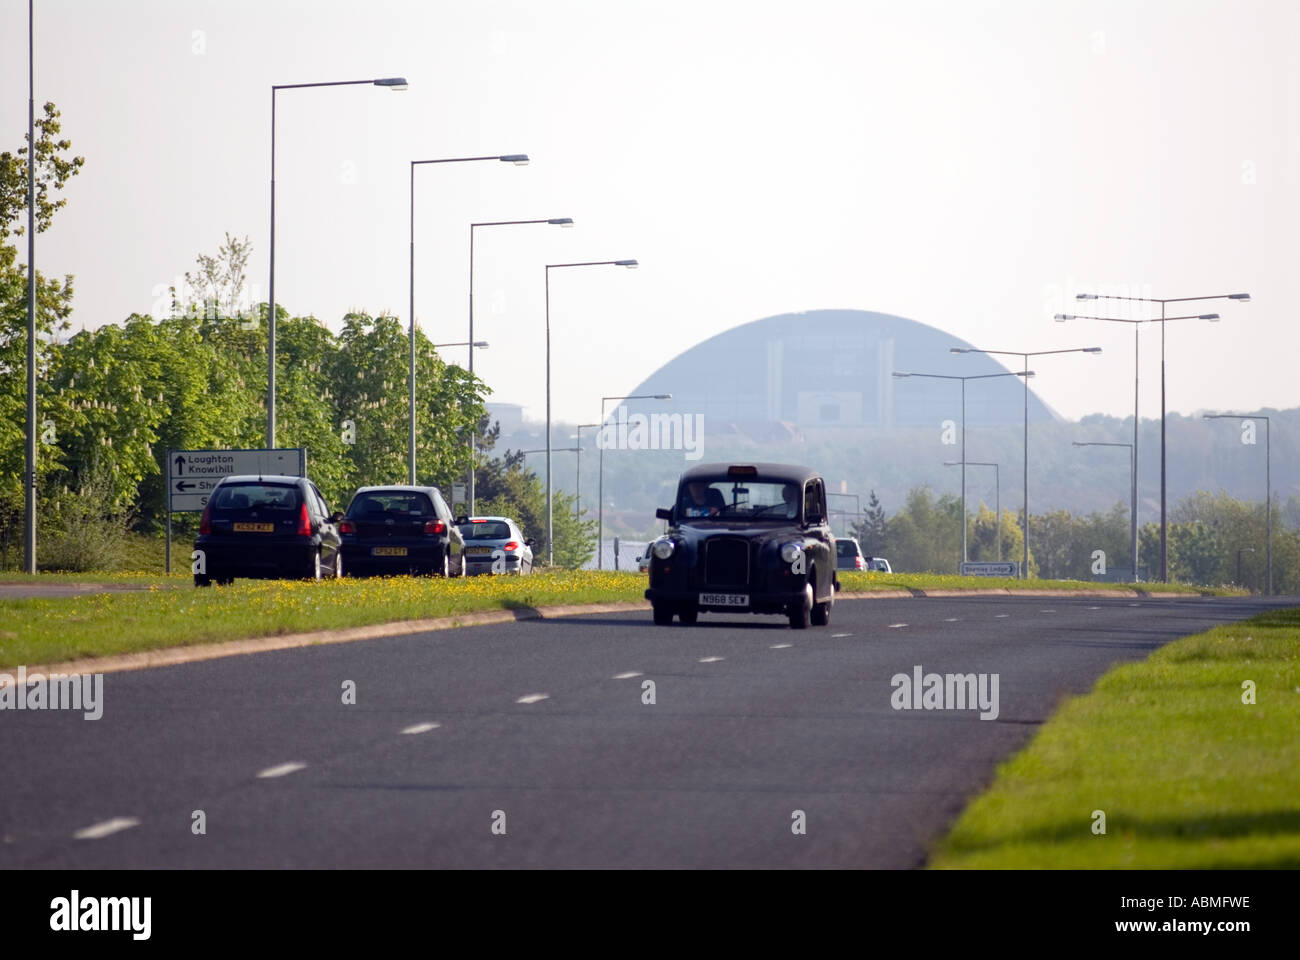 taxi cab Central Milton Keynes road snow dome UK - Stock Image